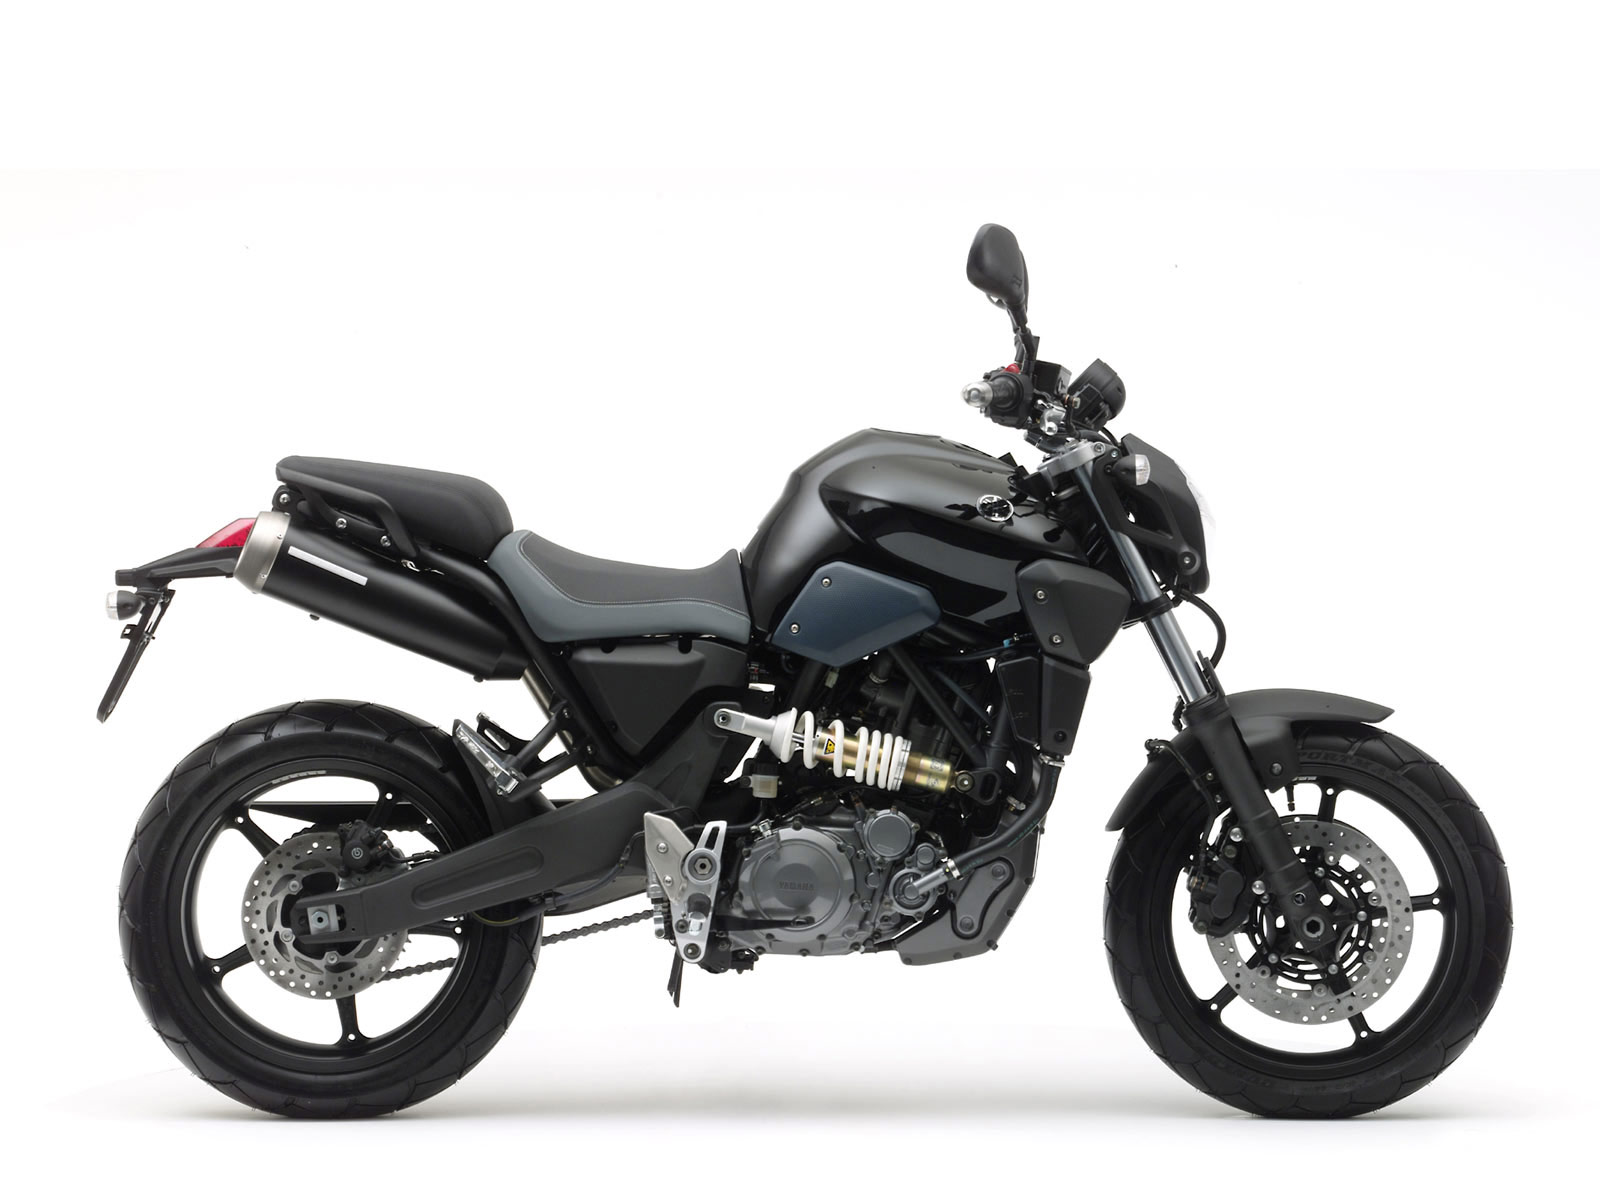 Used Honda Dual Sport Can you ride a Yamaha MT-03 with an A2 licence?